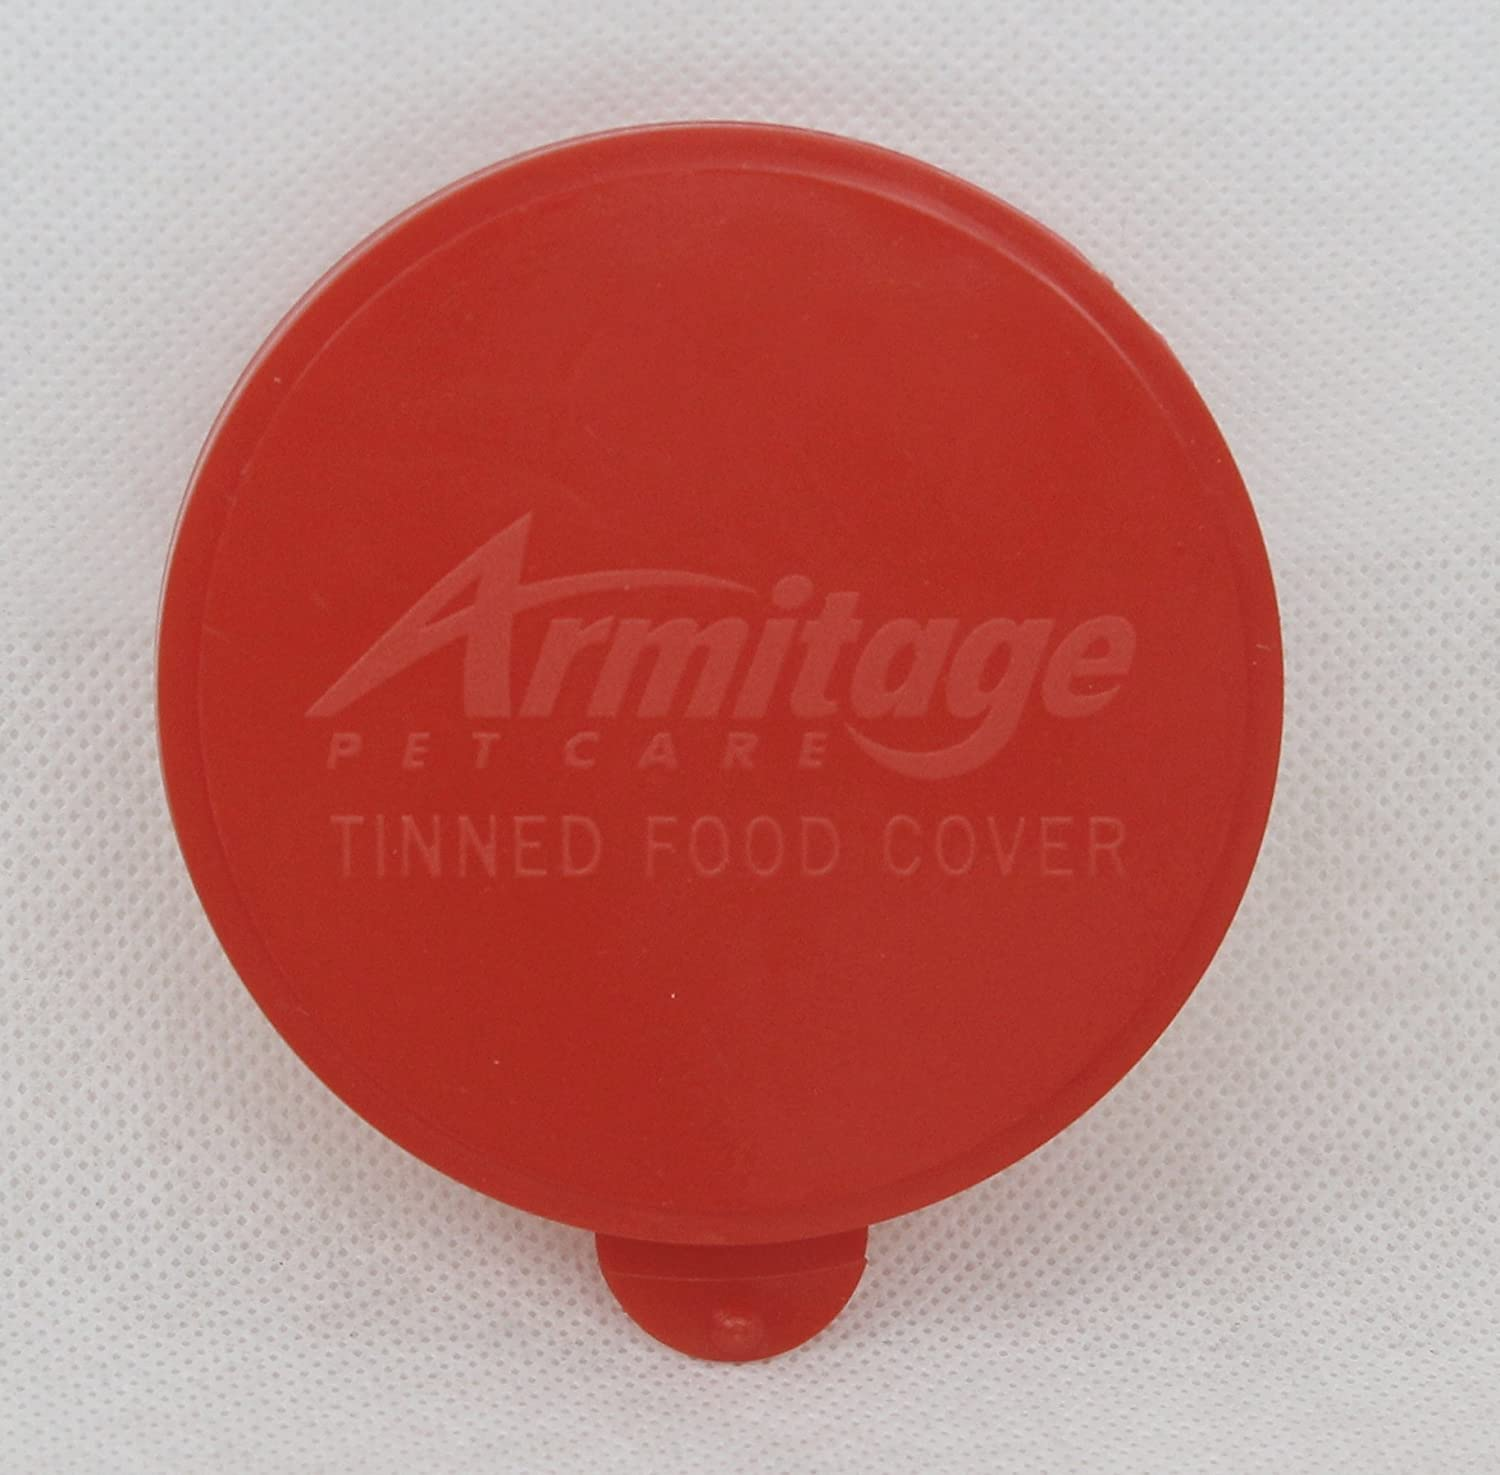 Armitages Canned Food Cover, Red, Fits 400g Tins, Standard 7.5cm Tin (1 cover)